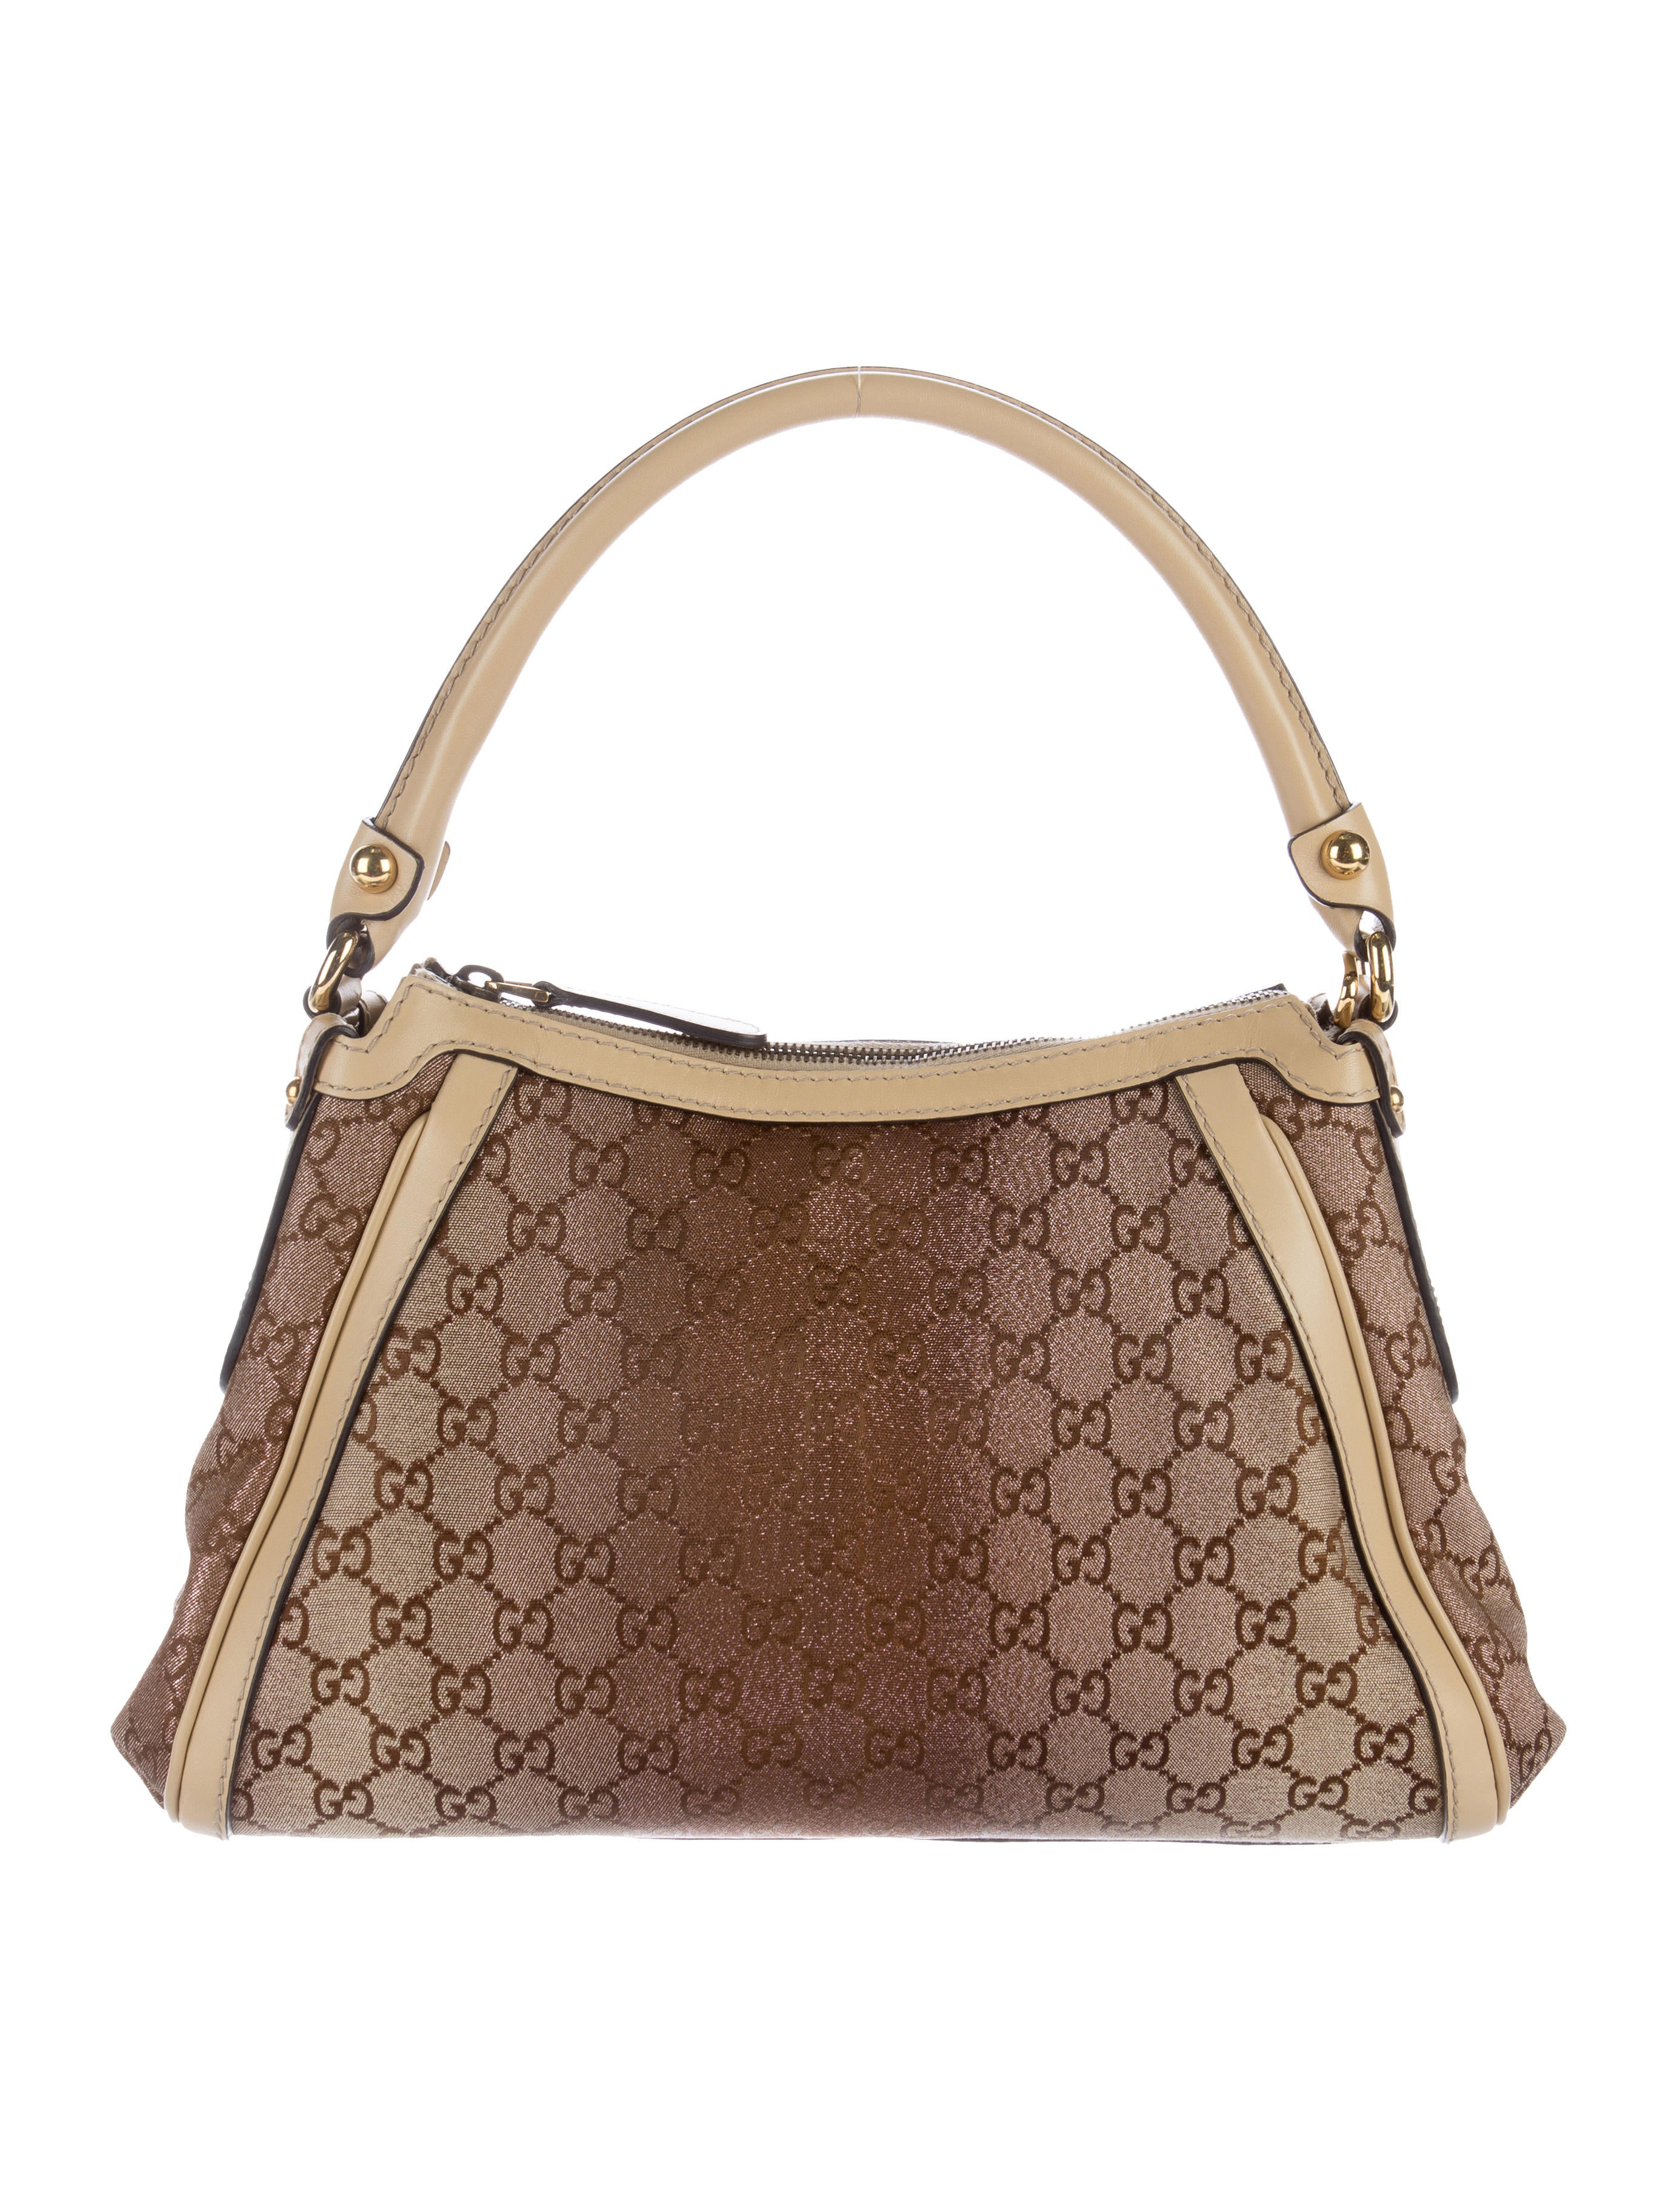 f11483a6a8f7 Gucci Gg Canvas Handbags | Stanford Center for Opportunity Policy in ...